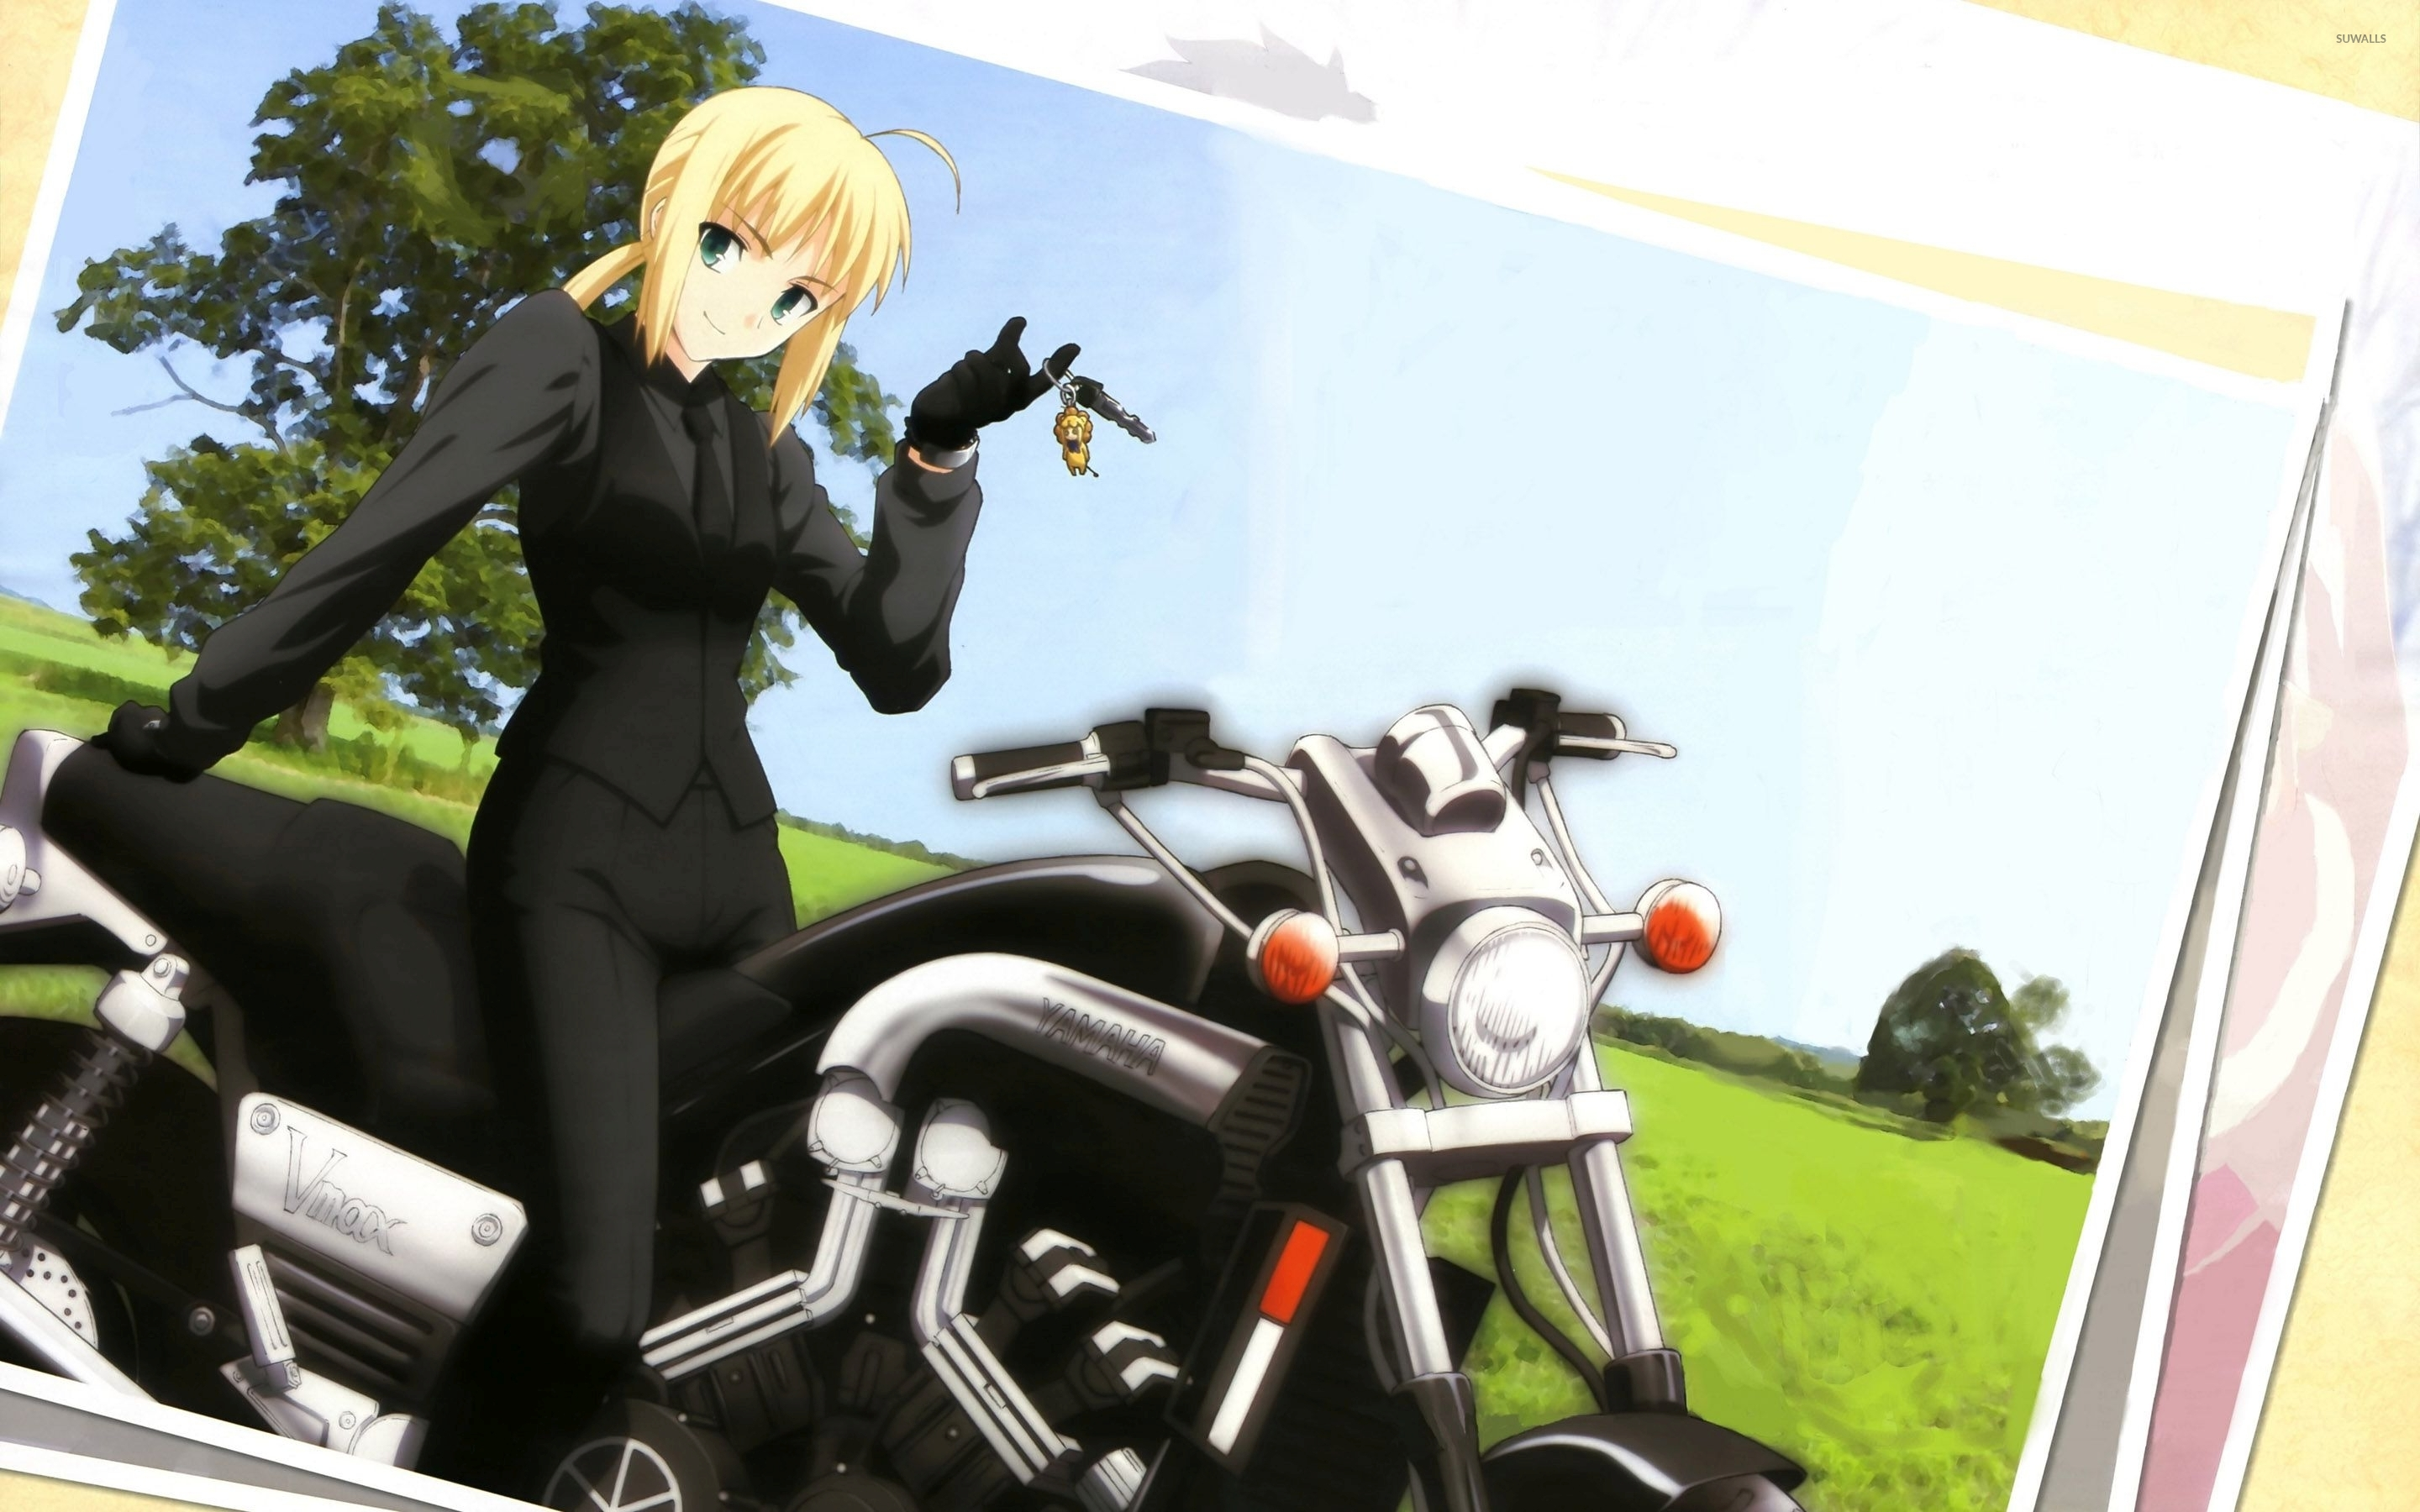 Fate Zero Wallpaper Hd Saber On A Bike Fate Zero Wallpaper Anime Wallpapers